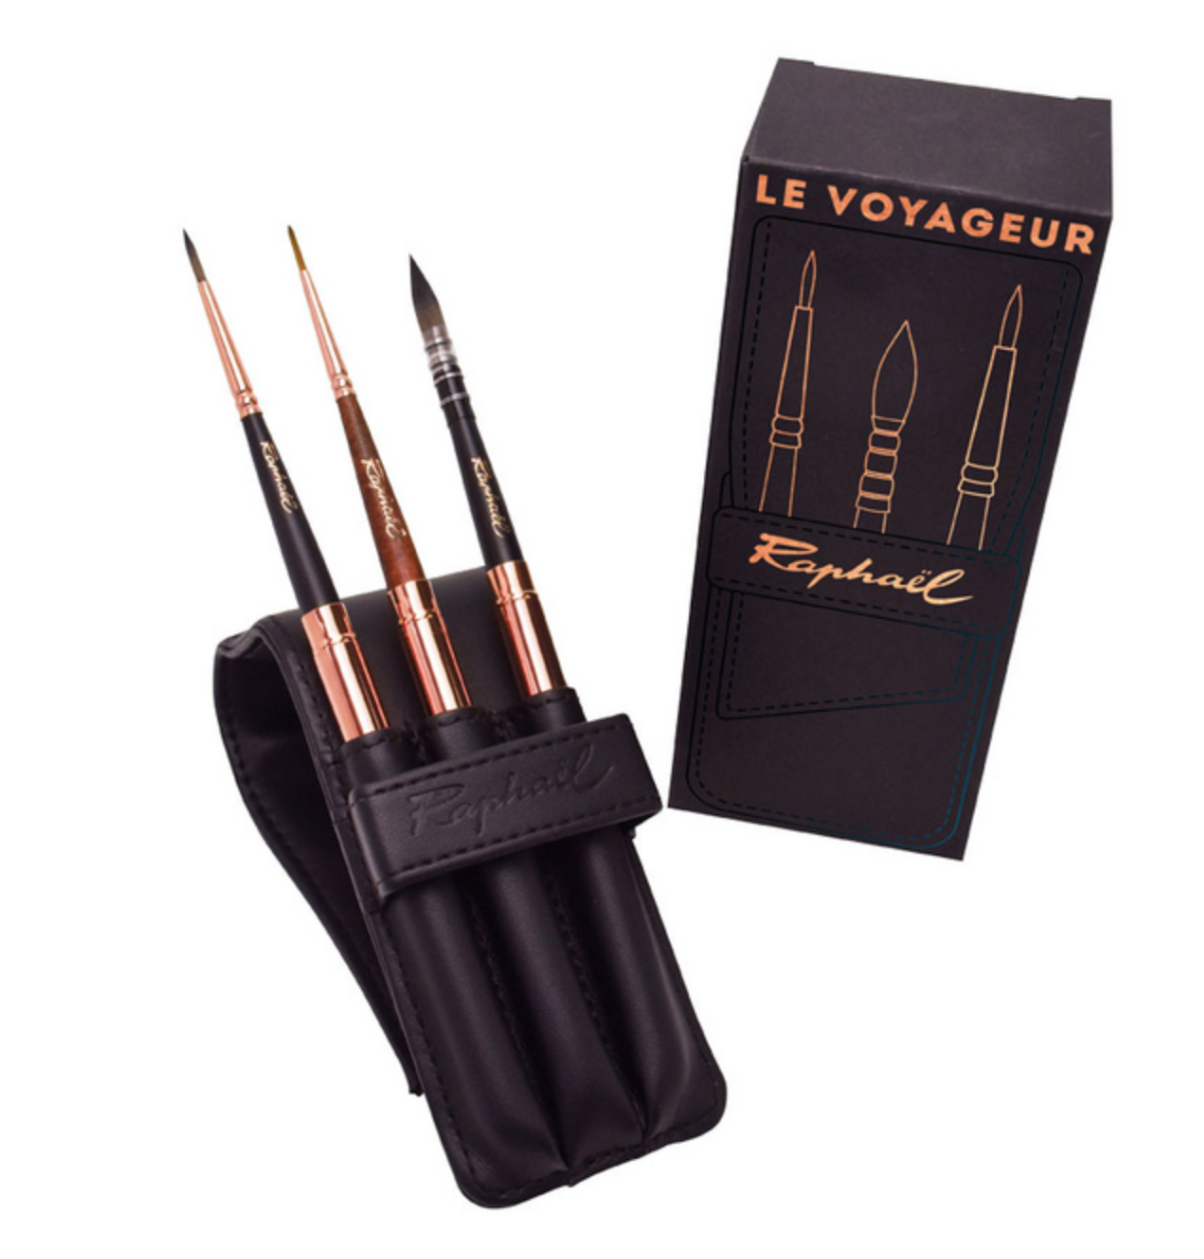 RAPHAEL LE VOYAGEUR PINCEAUX SET PACK LOT BRUSH LEATHER CUIR COULEURS AQUARELLABLES ART ARTISTE DESSIN DRAW PRO 3046451875498 COMASOUND KARTEL CSK ONLINE